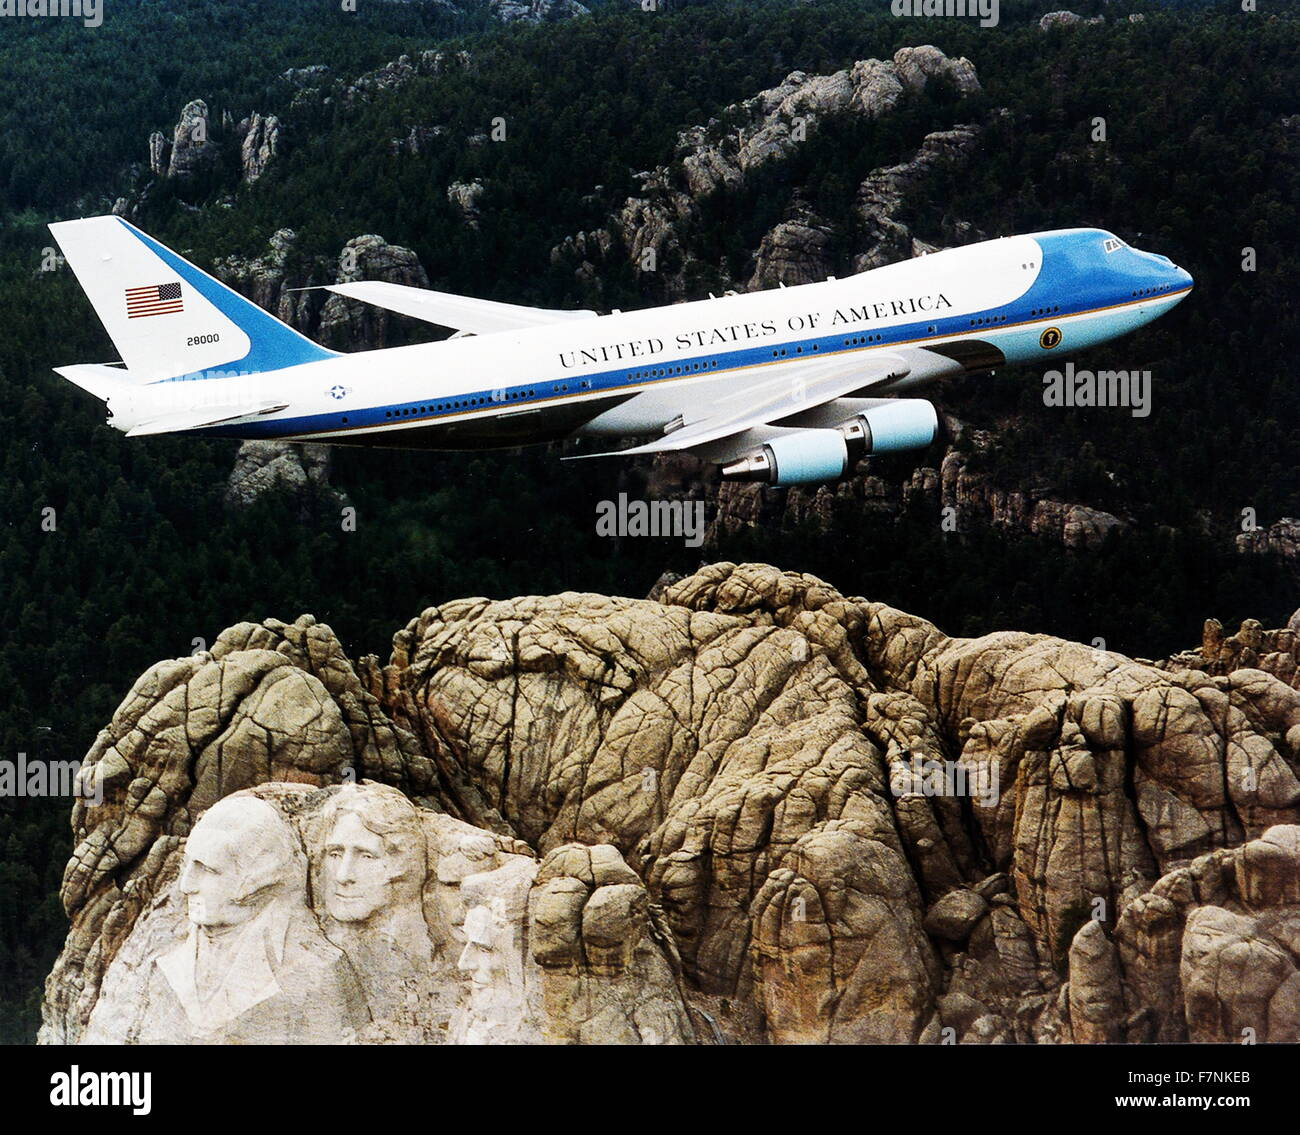 Air Force One, the air transport of the President of the United States of America, flying over Mount Rushmore. 2001 - Stock Image